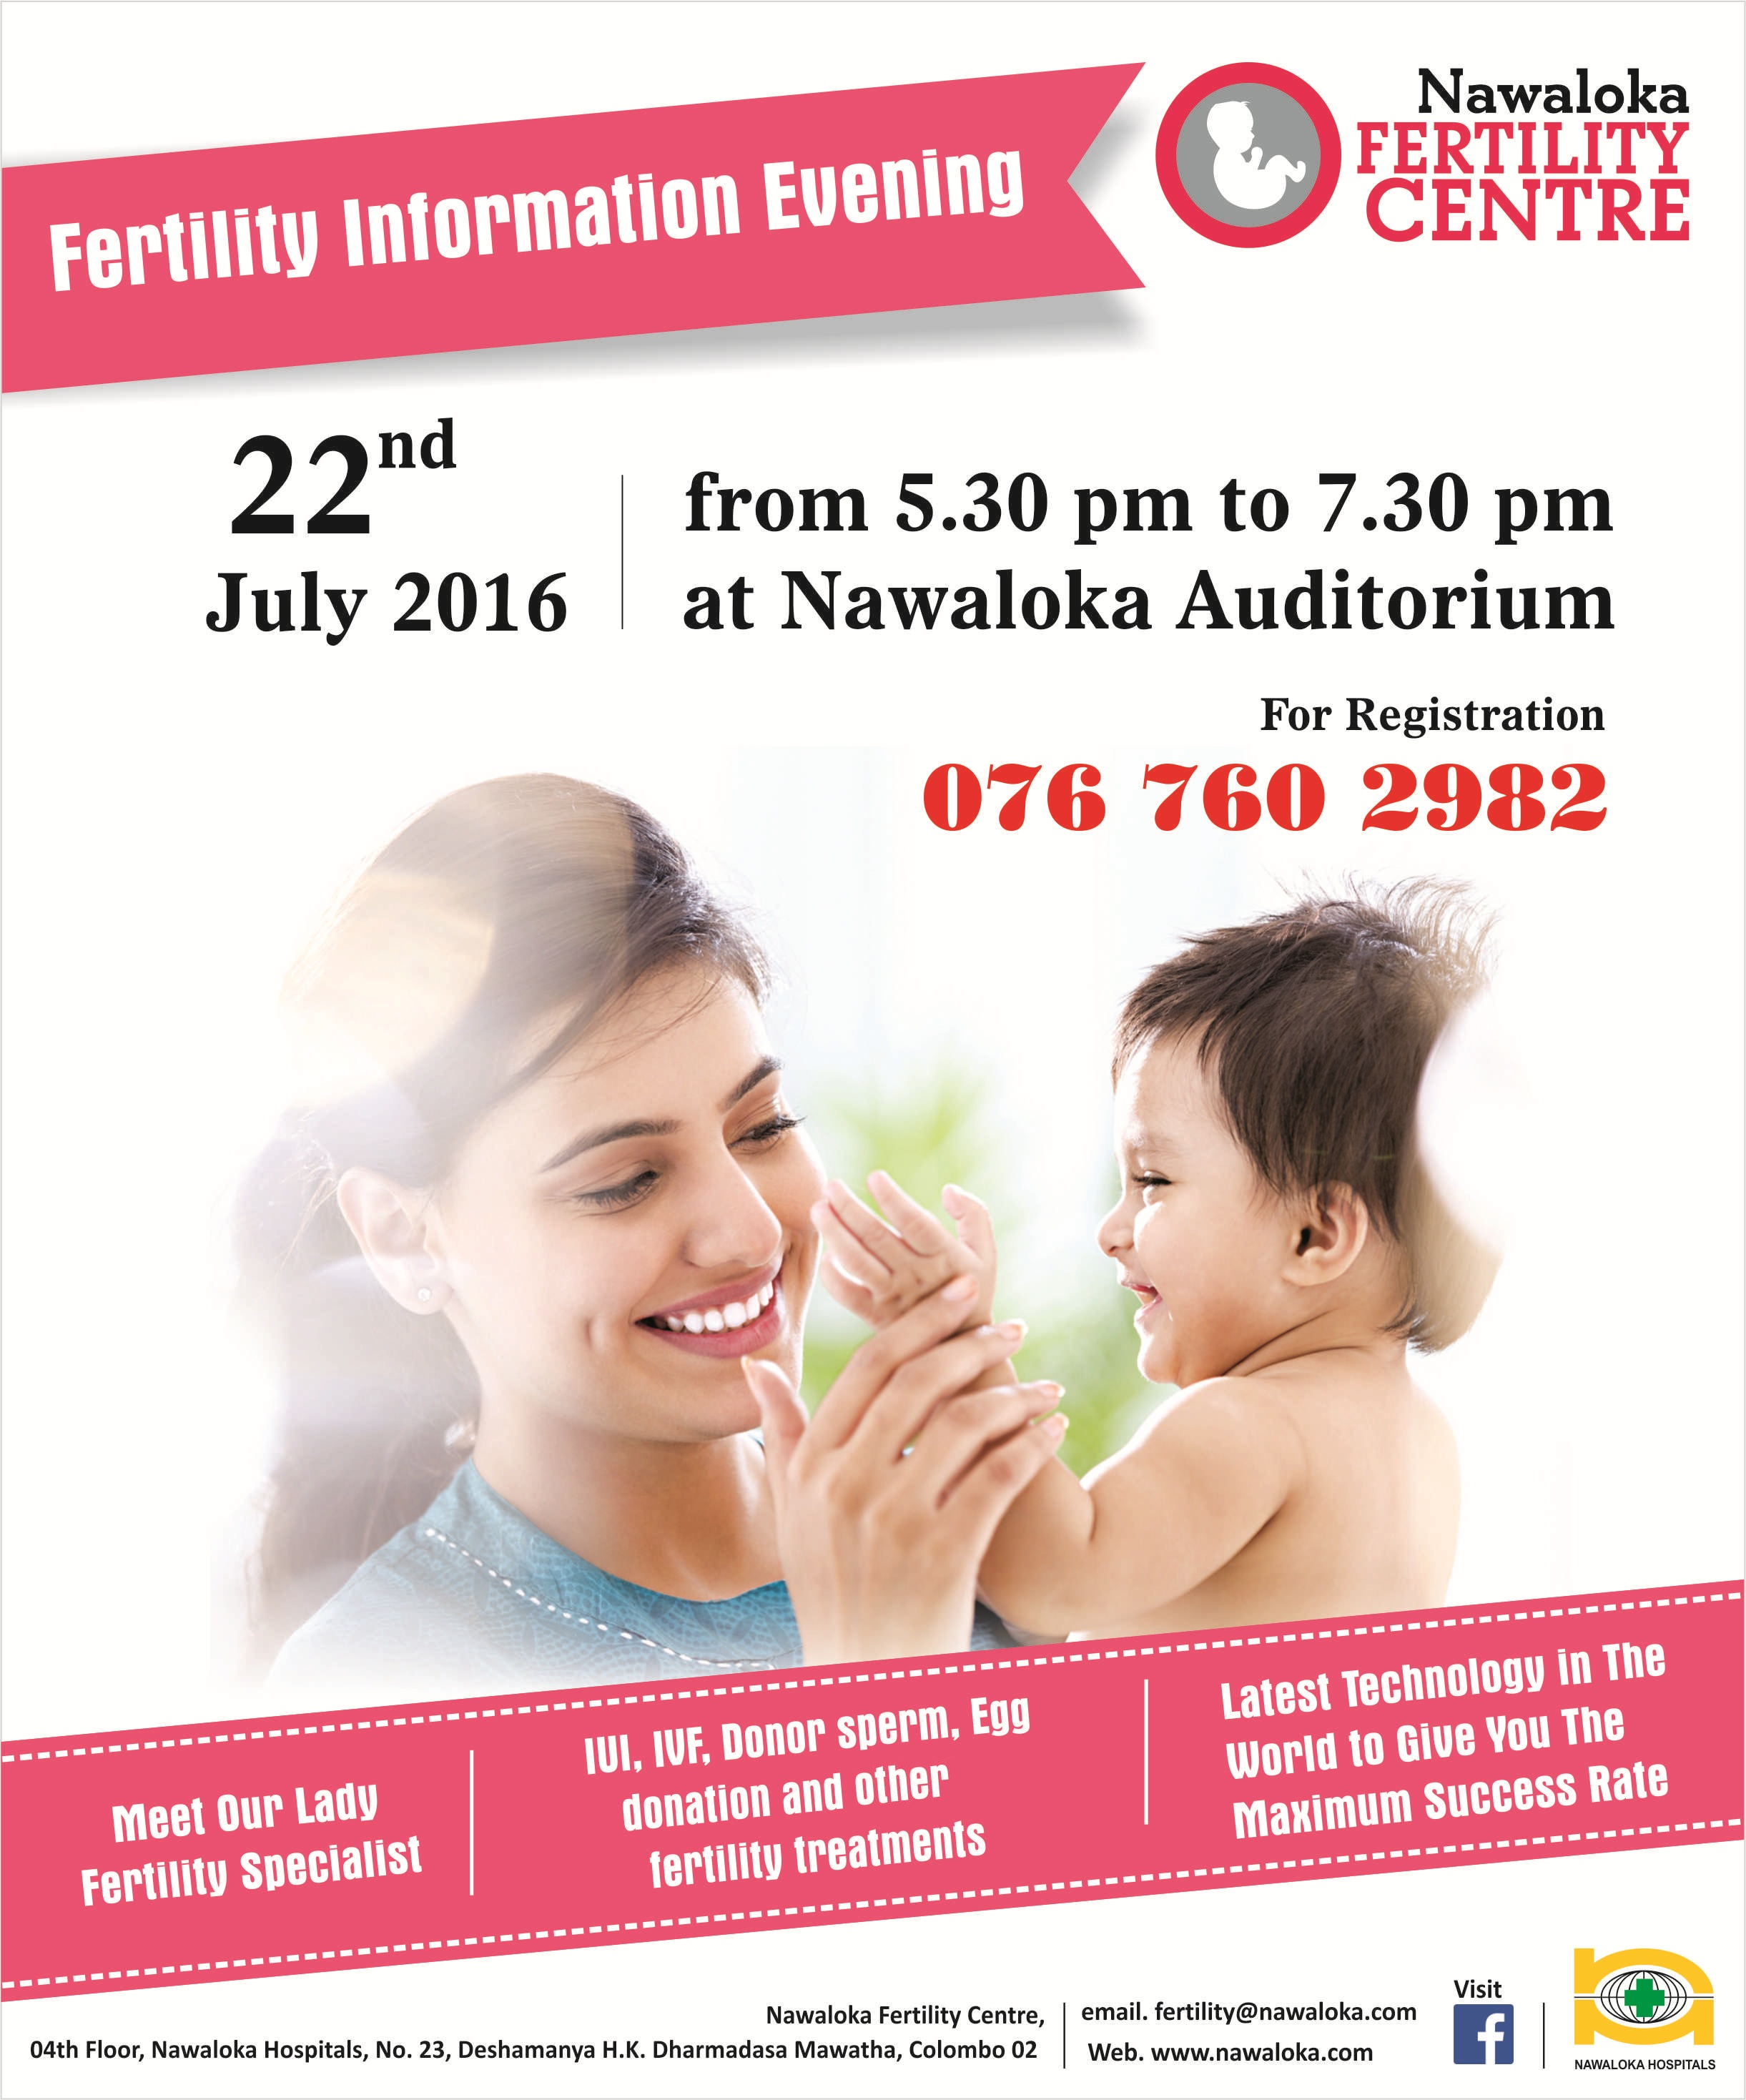 Fertility Information Evening